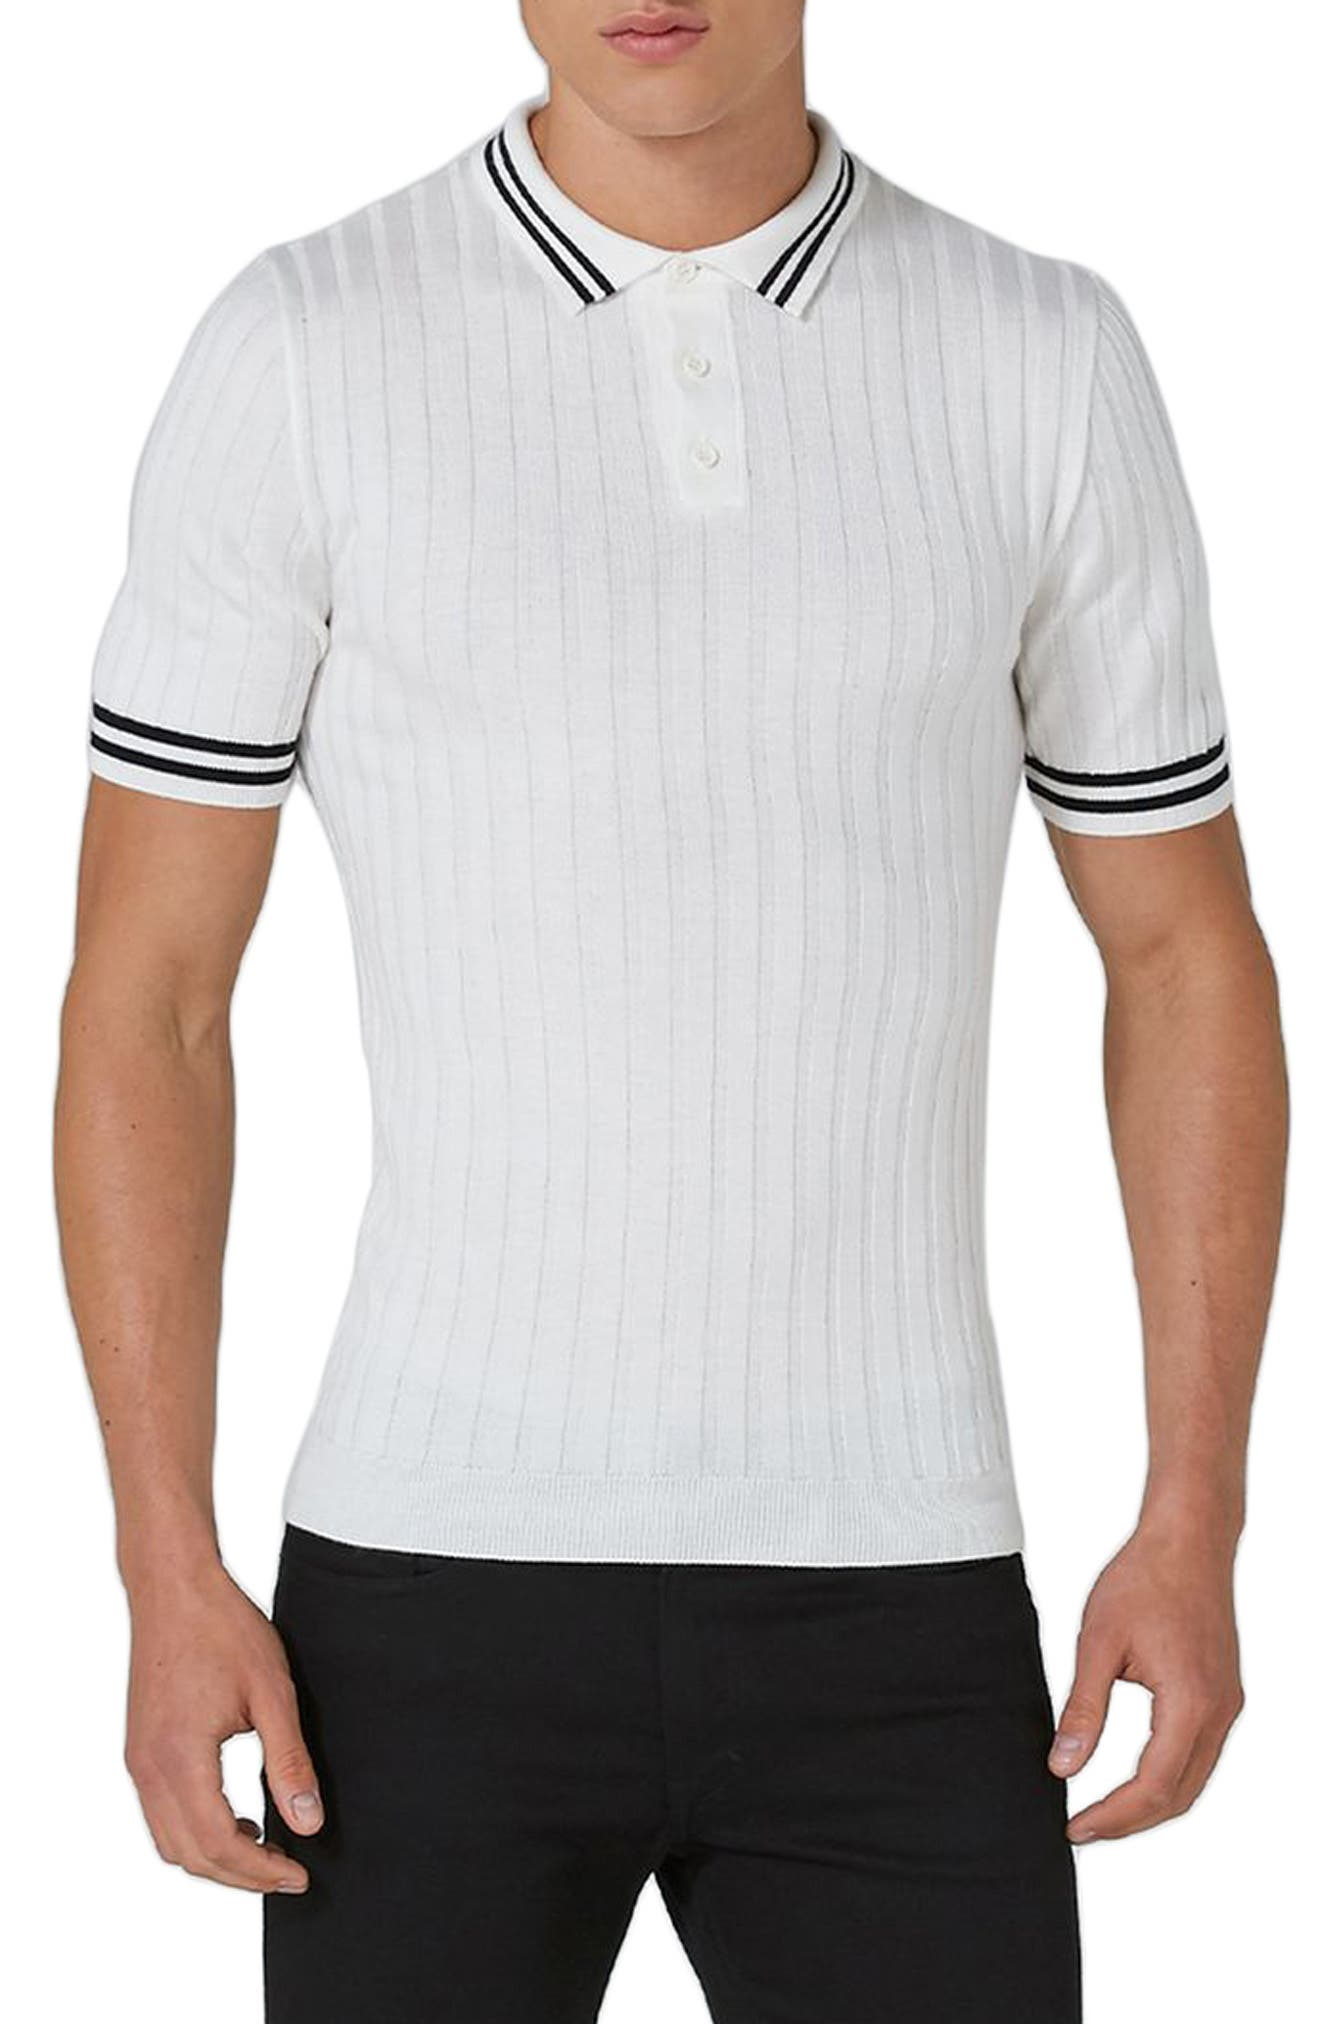 Topman Muscle Fit Rib Knit Polo